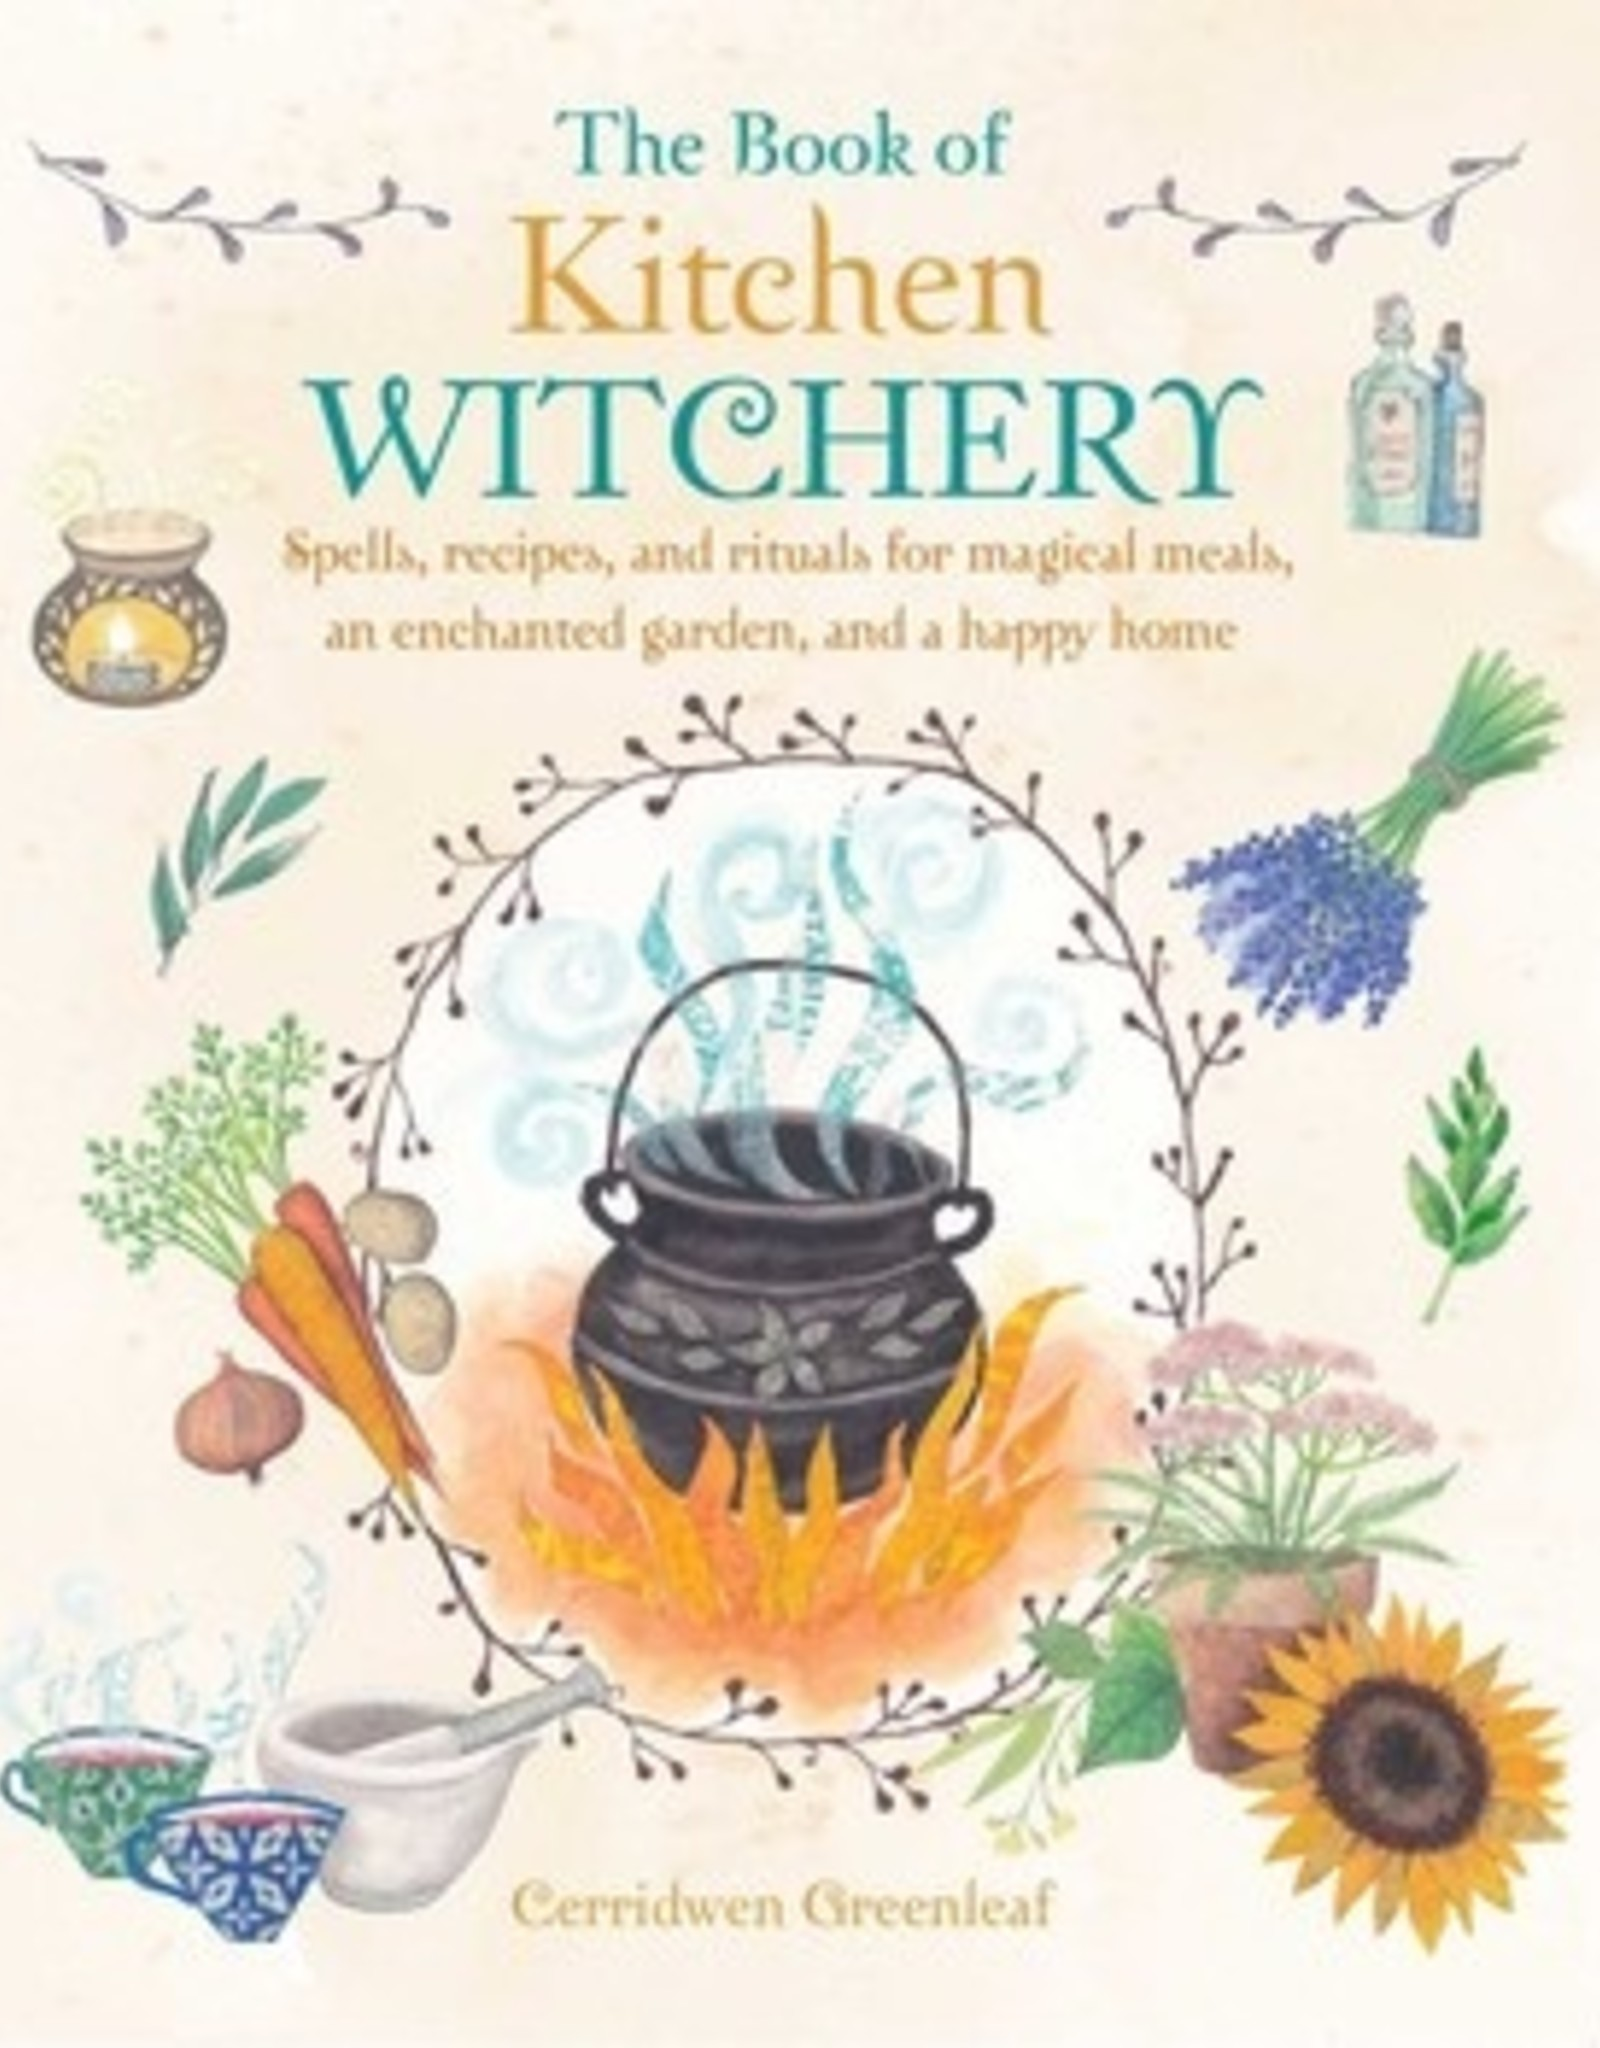 Simon & Schuster Book of Kitchen Witchery